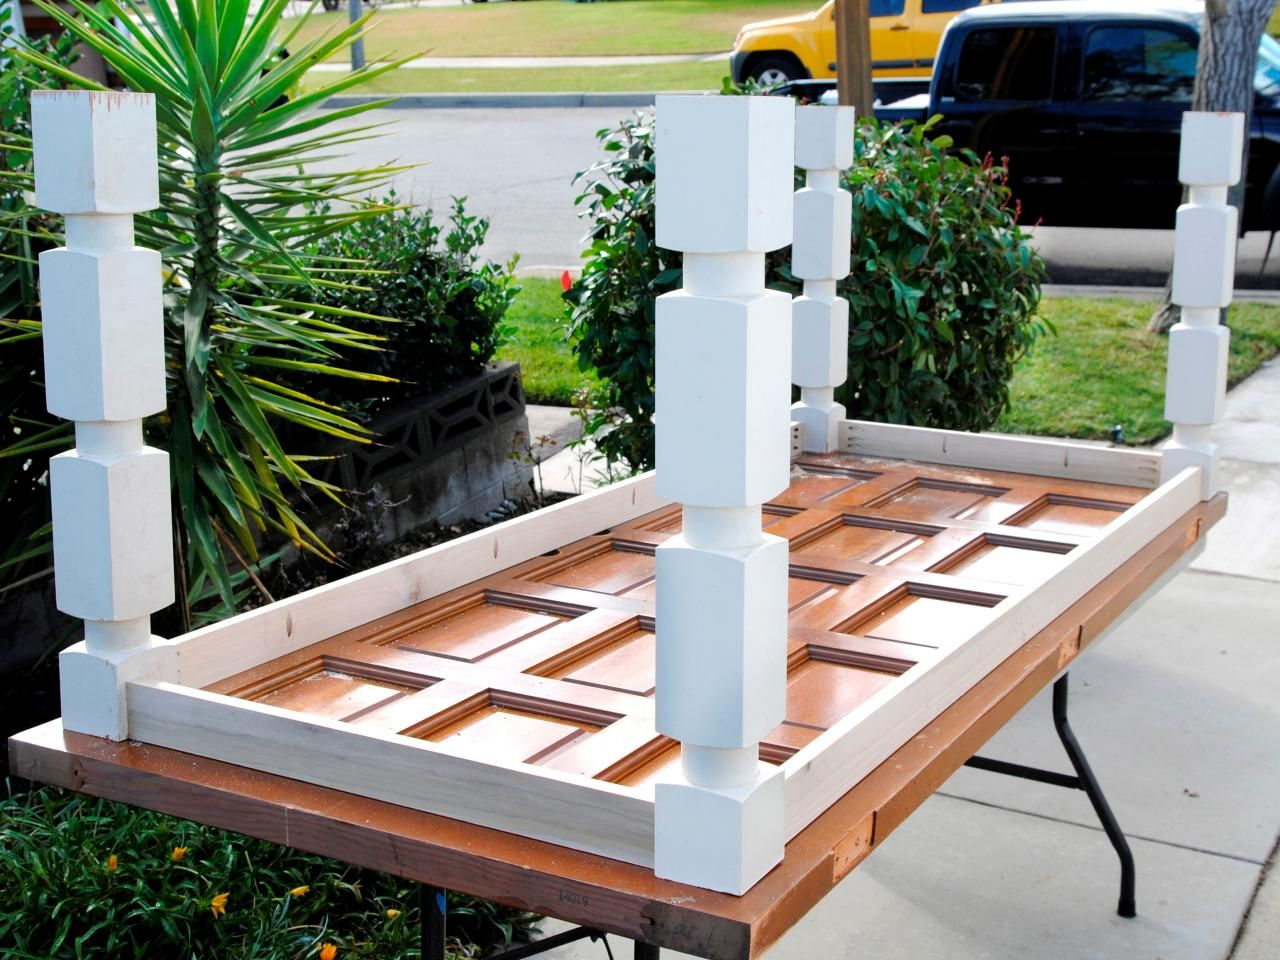 How To Build A Dining Table From An Old Door And Posts Hgtv Reuse